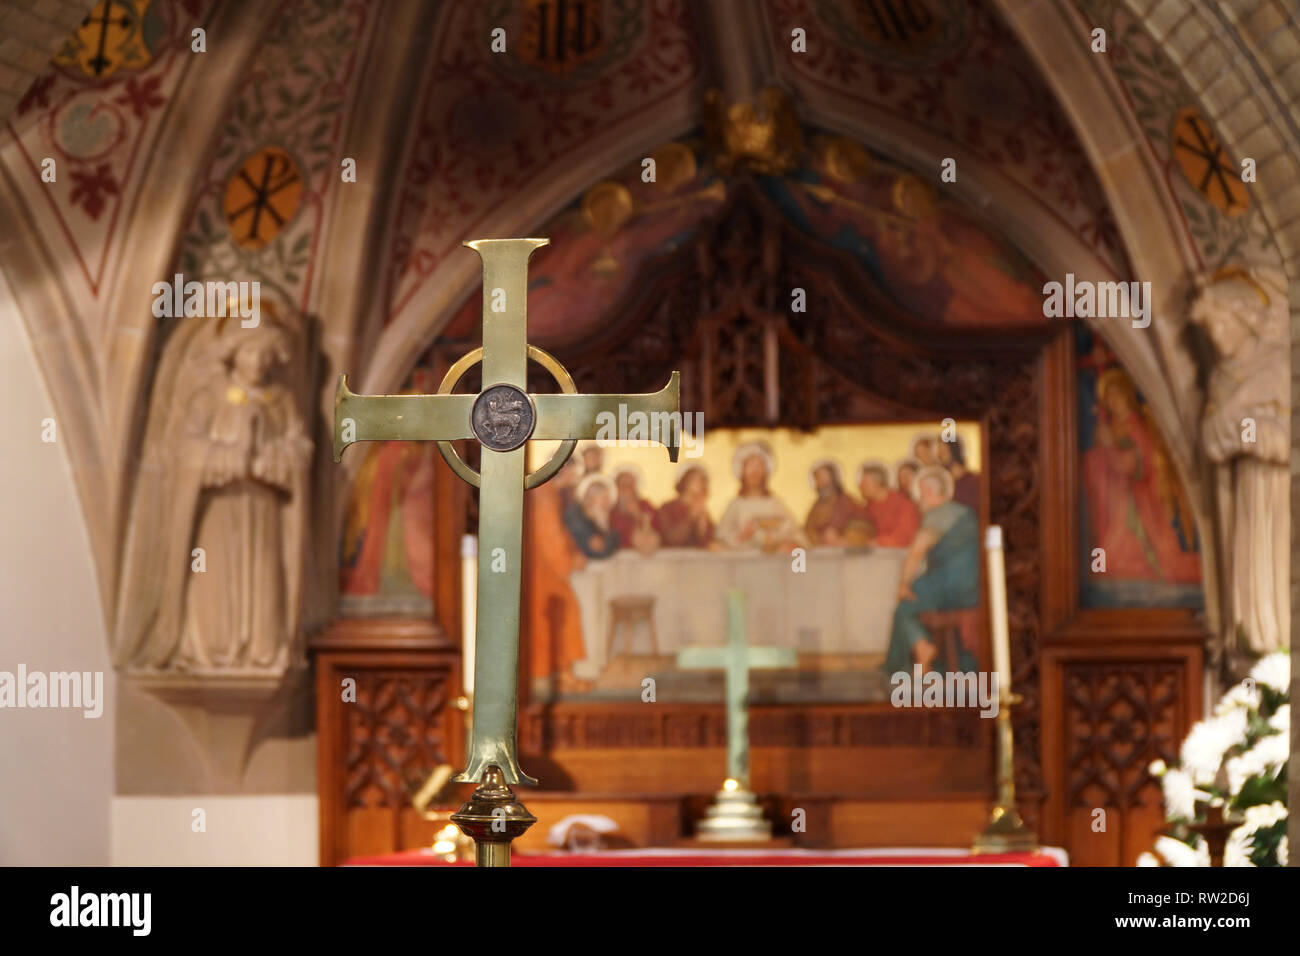 Brass cross in fornt of the high altar in a church with a paiting of the Last Supper in the background - Stock Image